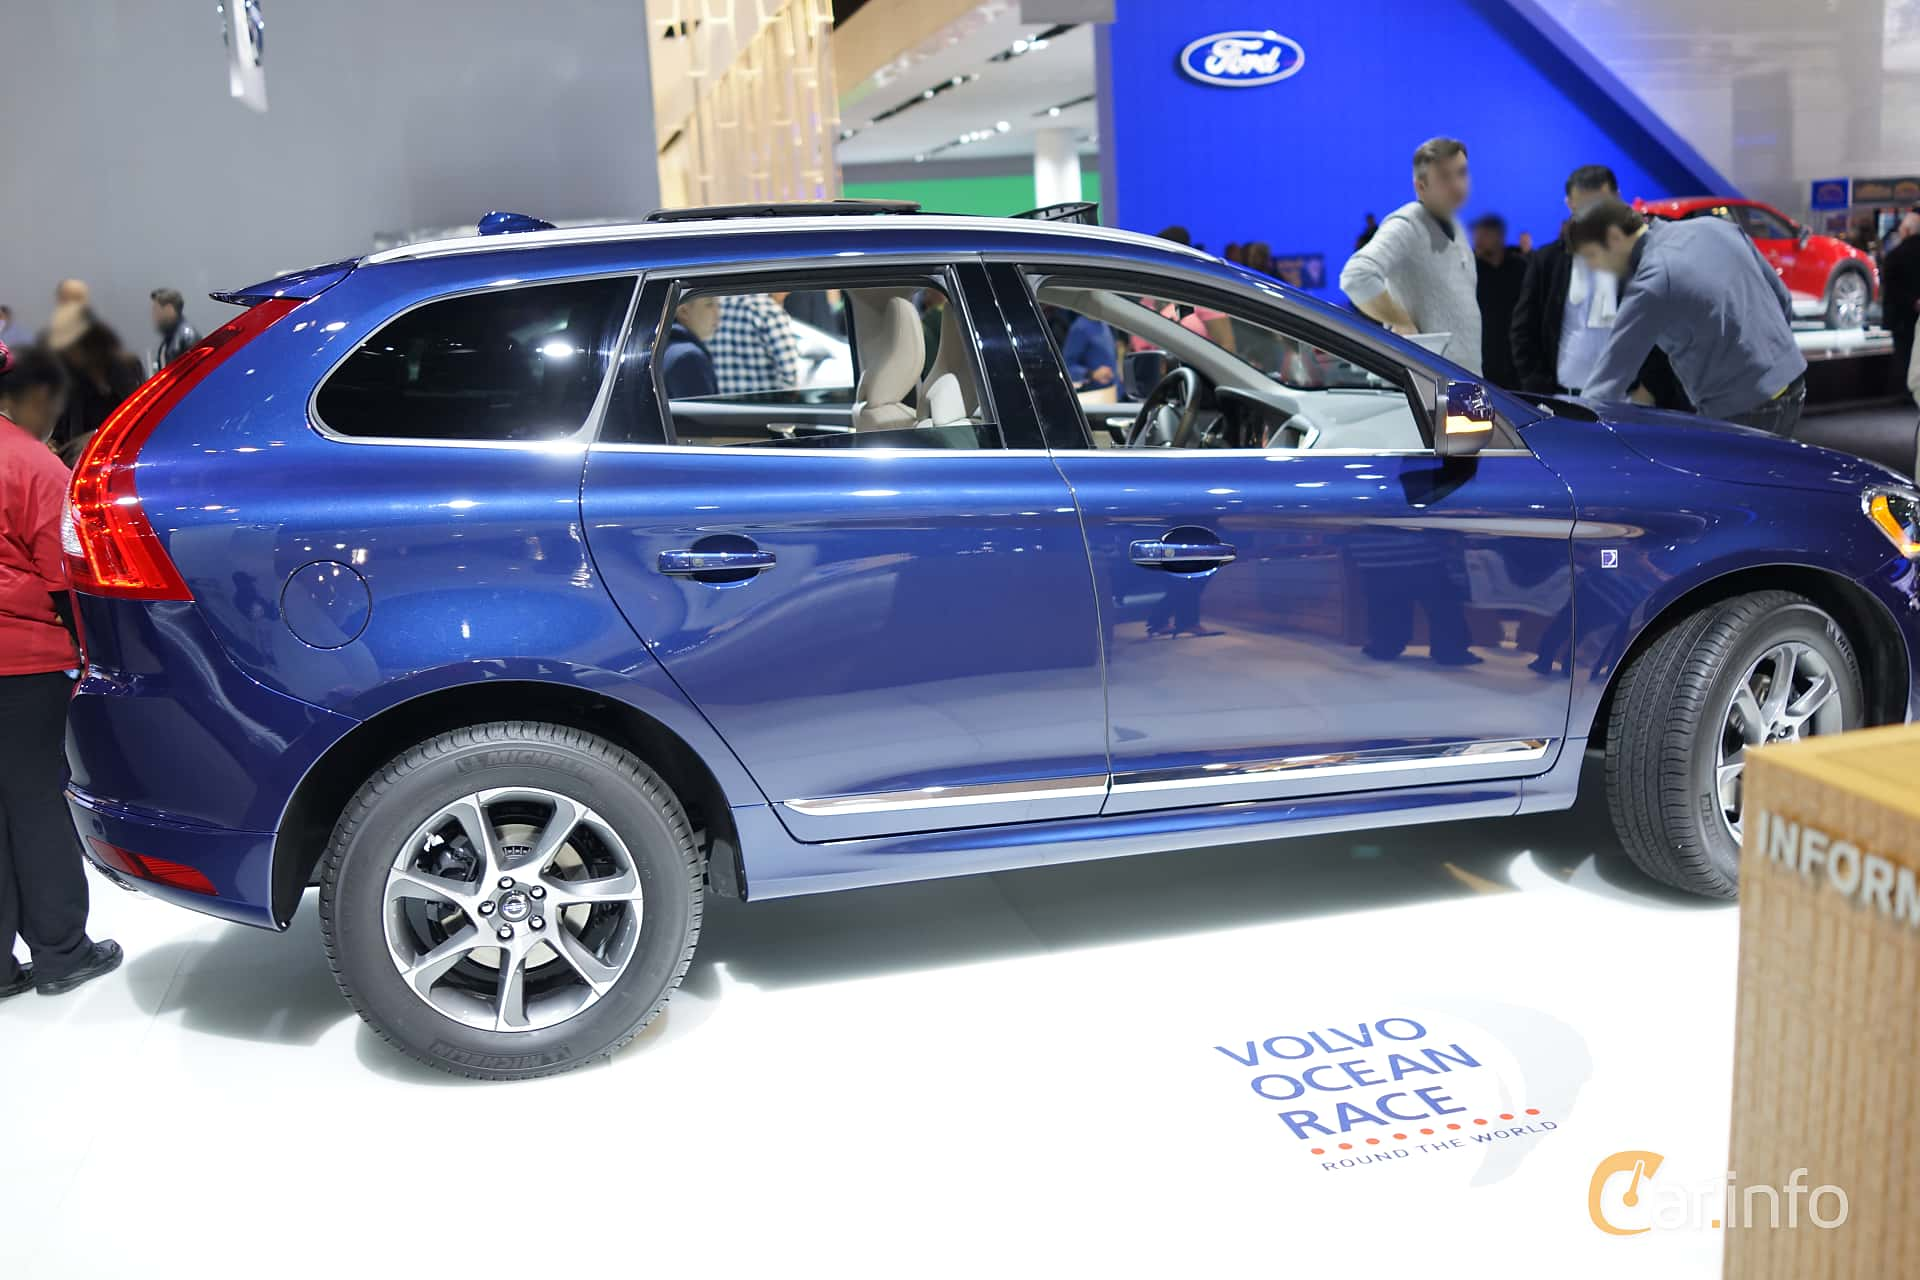 reviews awd and car com carreview at volvo review news